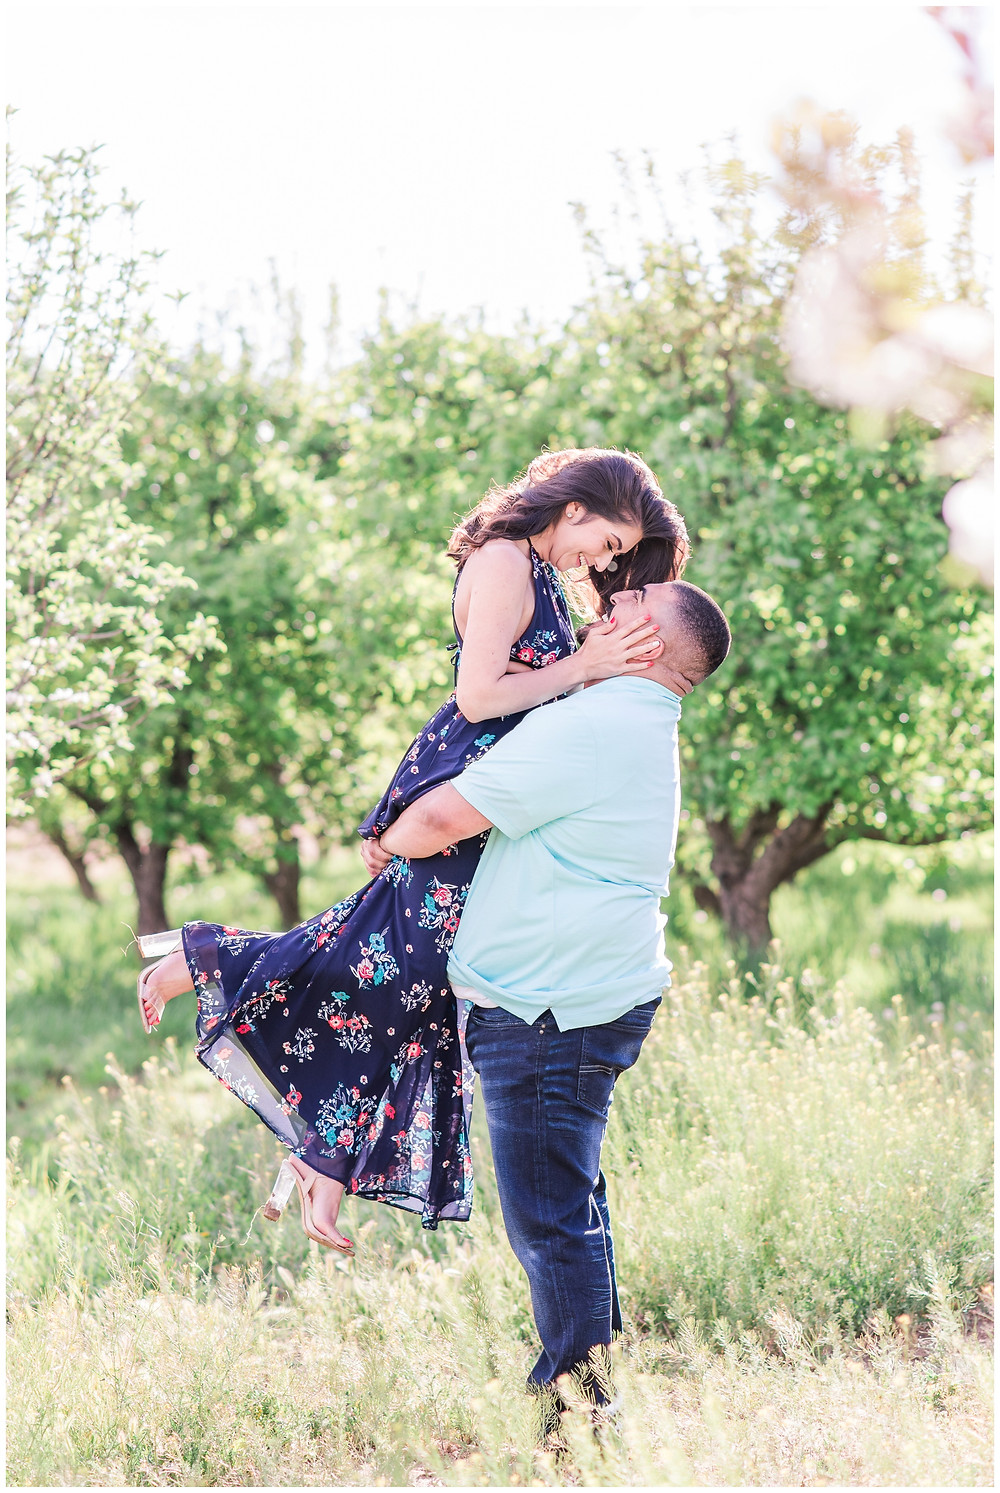 Flower tree engagement in corrales, new Mexico. Albuquerque wedding photographer Maura Jane Photography. Outdoor engagements session in New Mexico. Groom lifting bride in apple orchard in engagement session